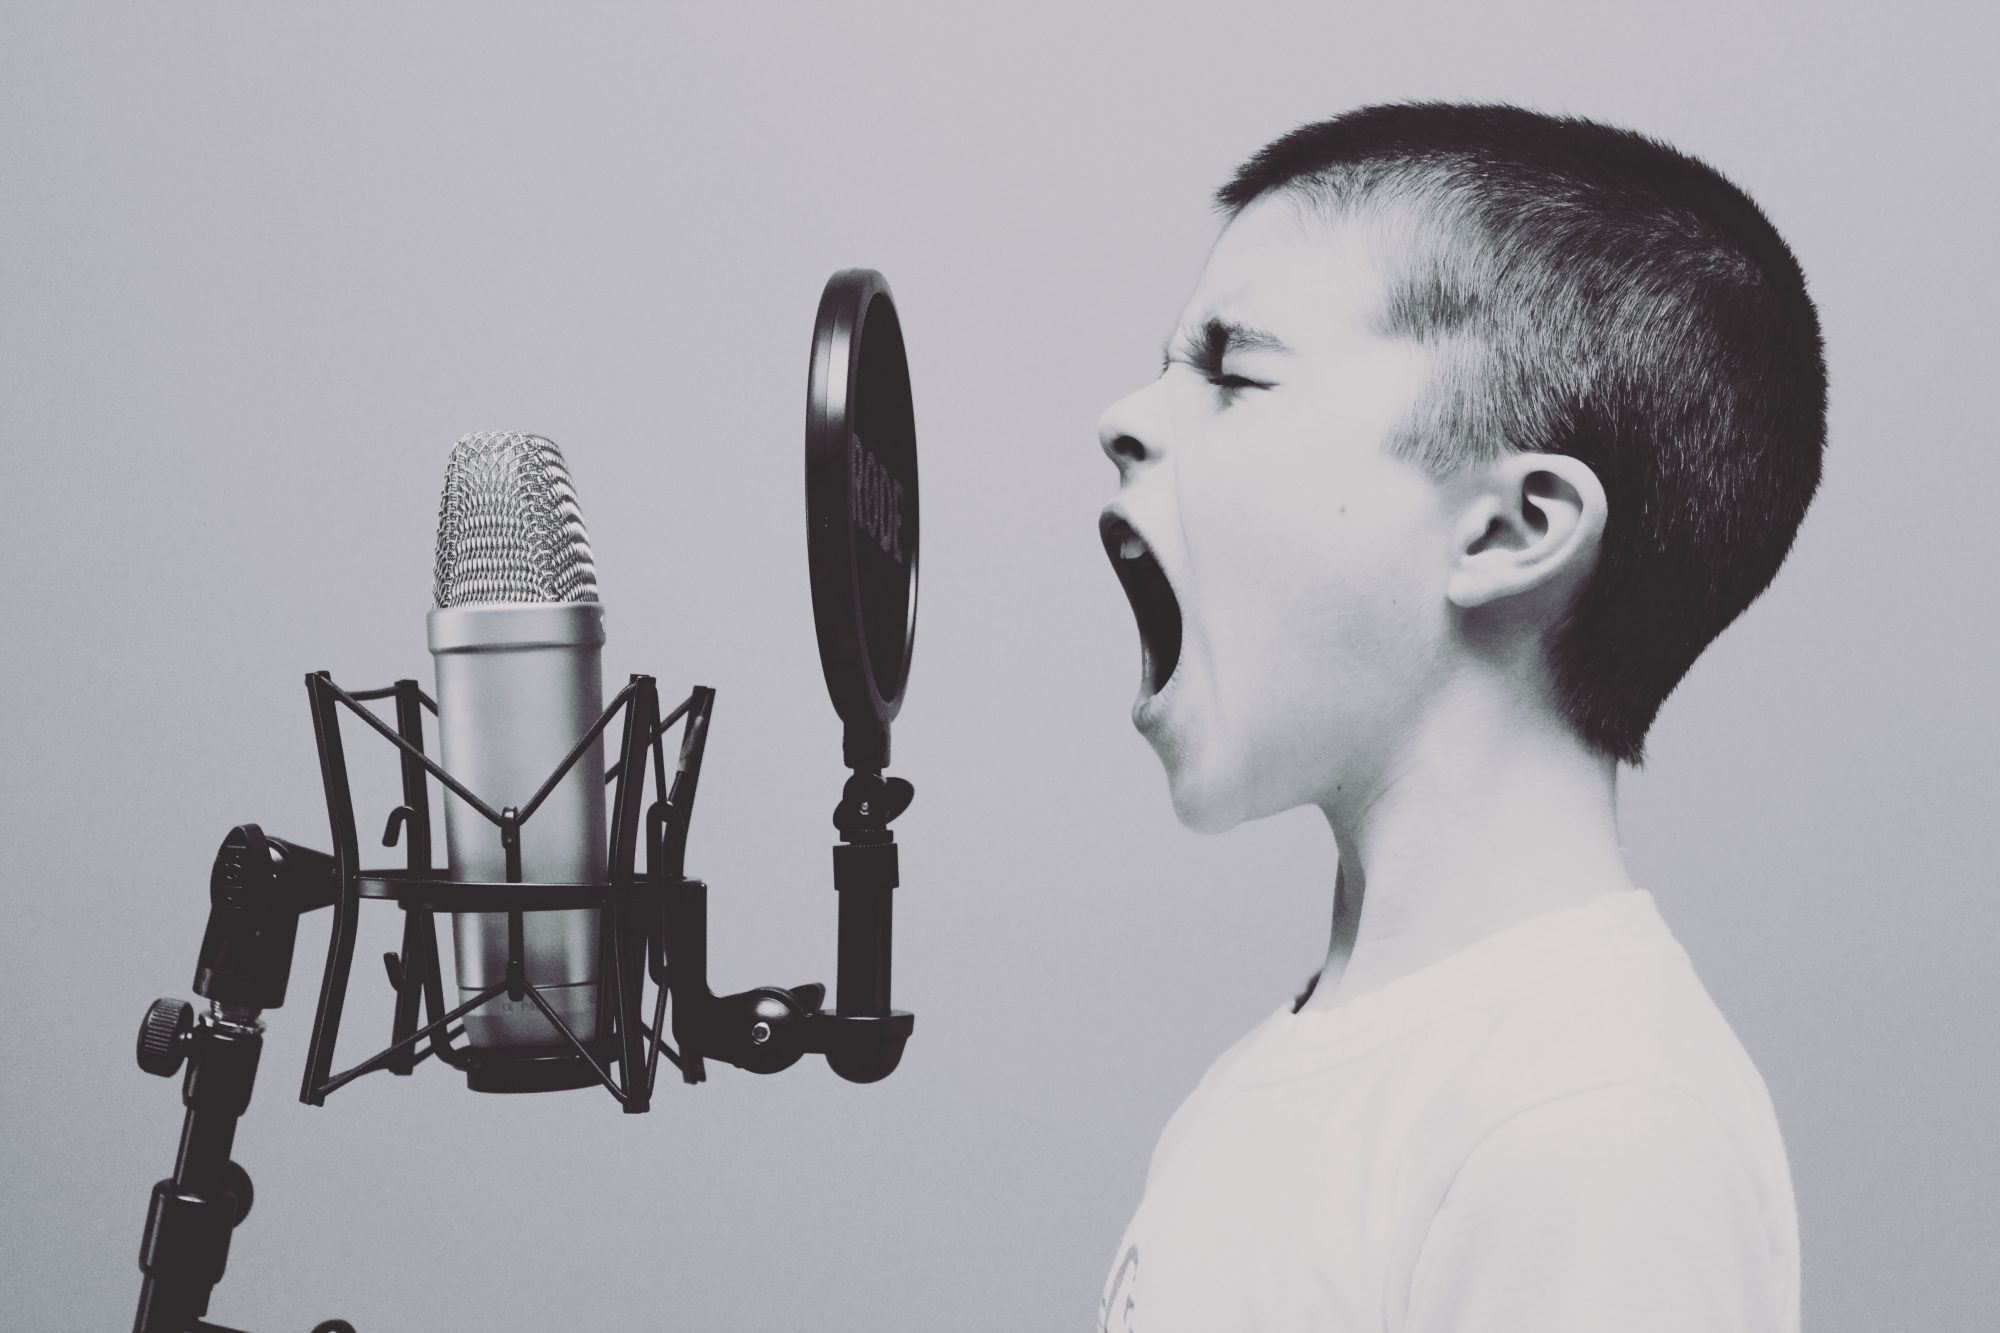 Boy singing into a microphone